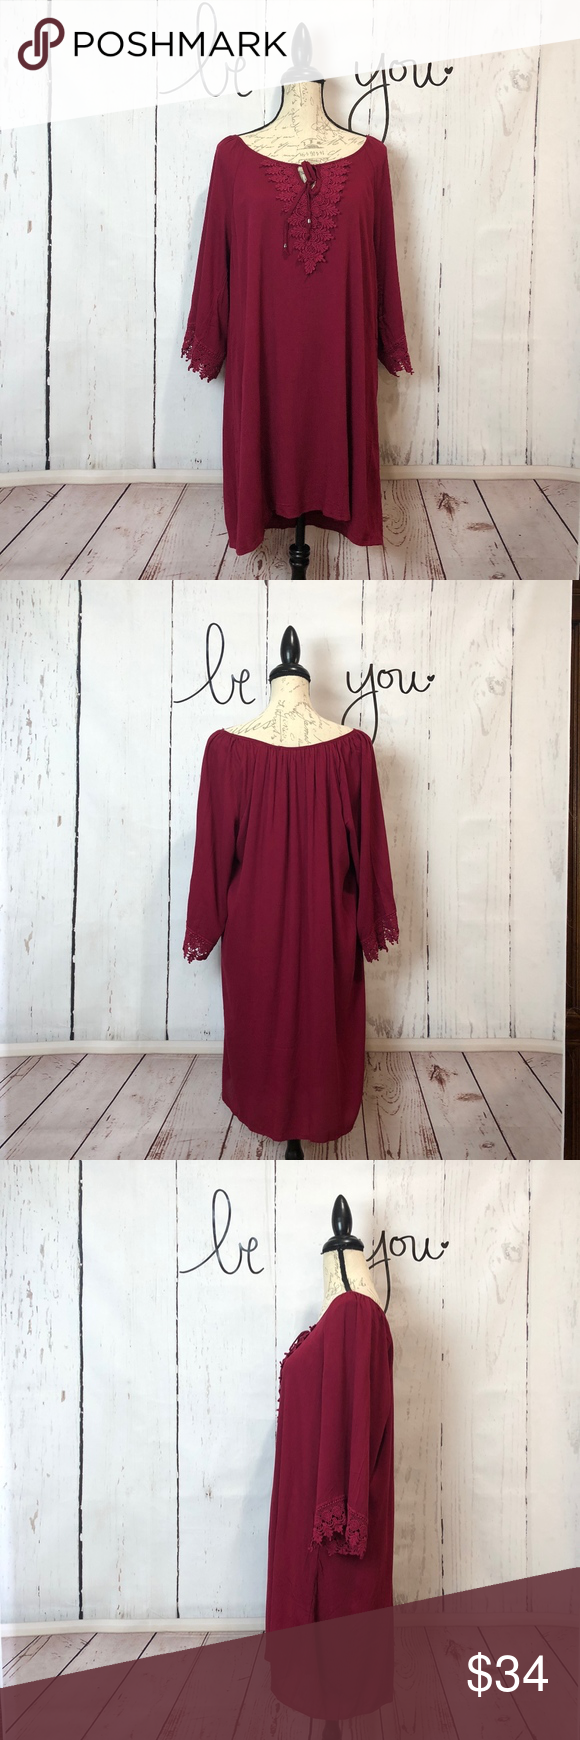 NAIF Cranberry Burgundy Red Dress or Tunic XL Naïf Tunic/Peasant Boho style dress in a cranberry burgundy red color. Fully lined. Tie keyhole front. …